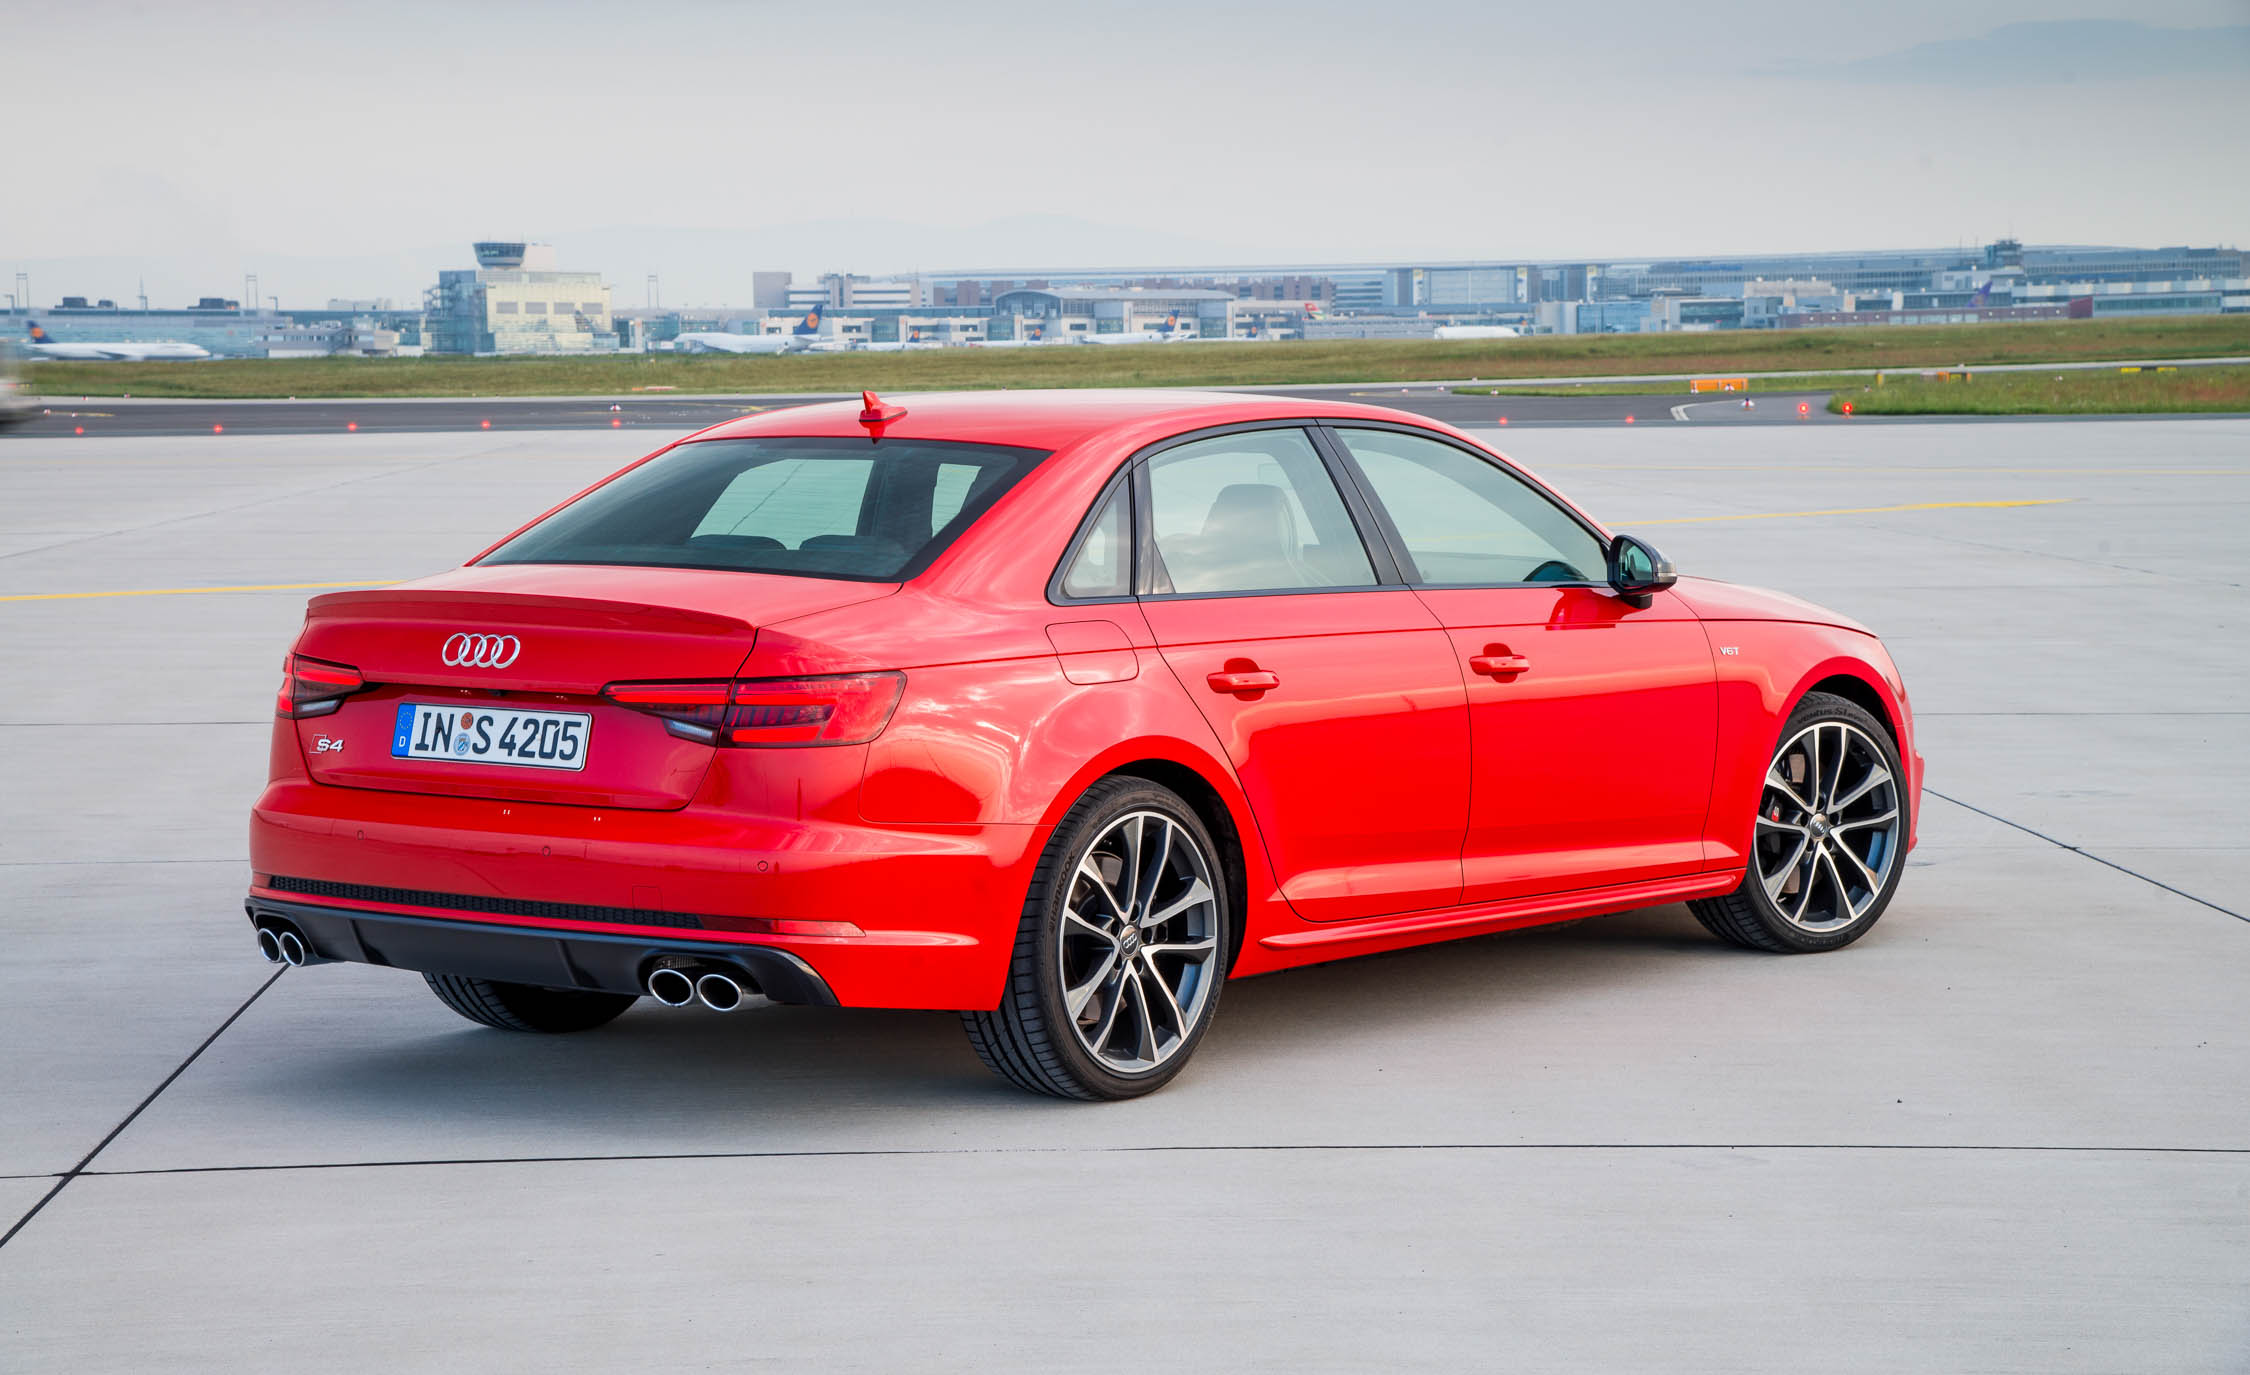 2018 Audi S4 Exterior Red Rear And Side (Photo 4 of 17)